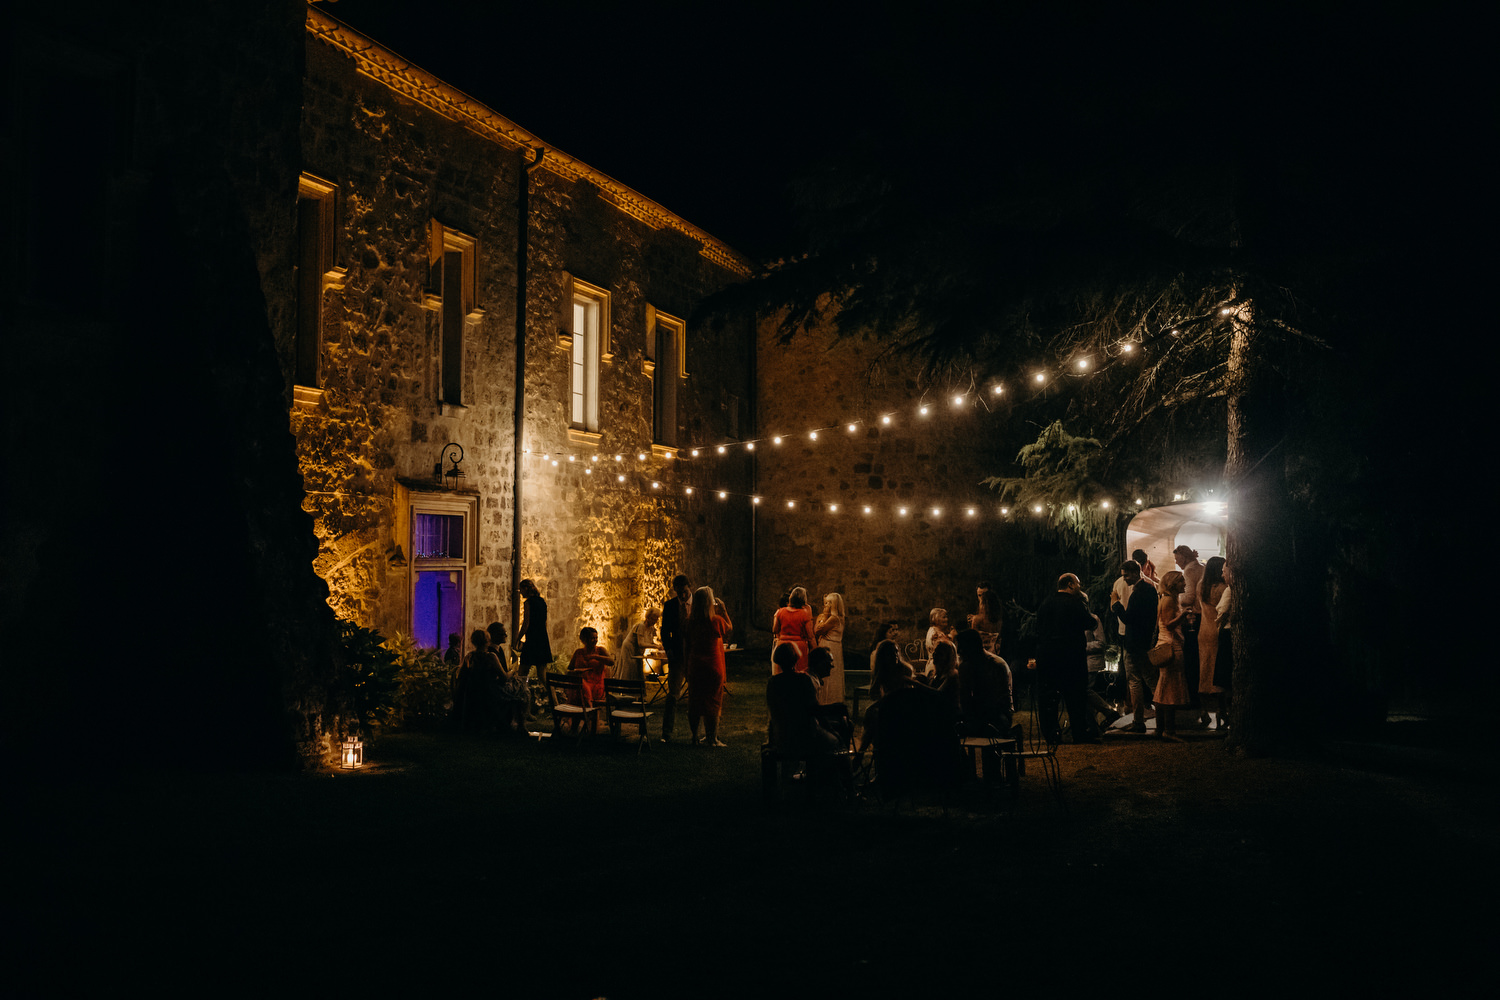 chateau terrace lit up with fairy lights